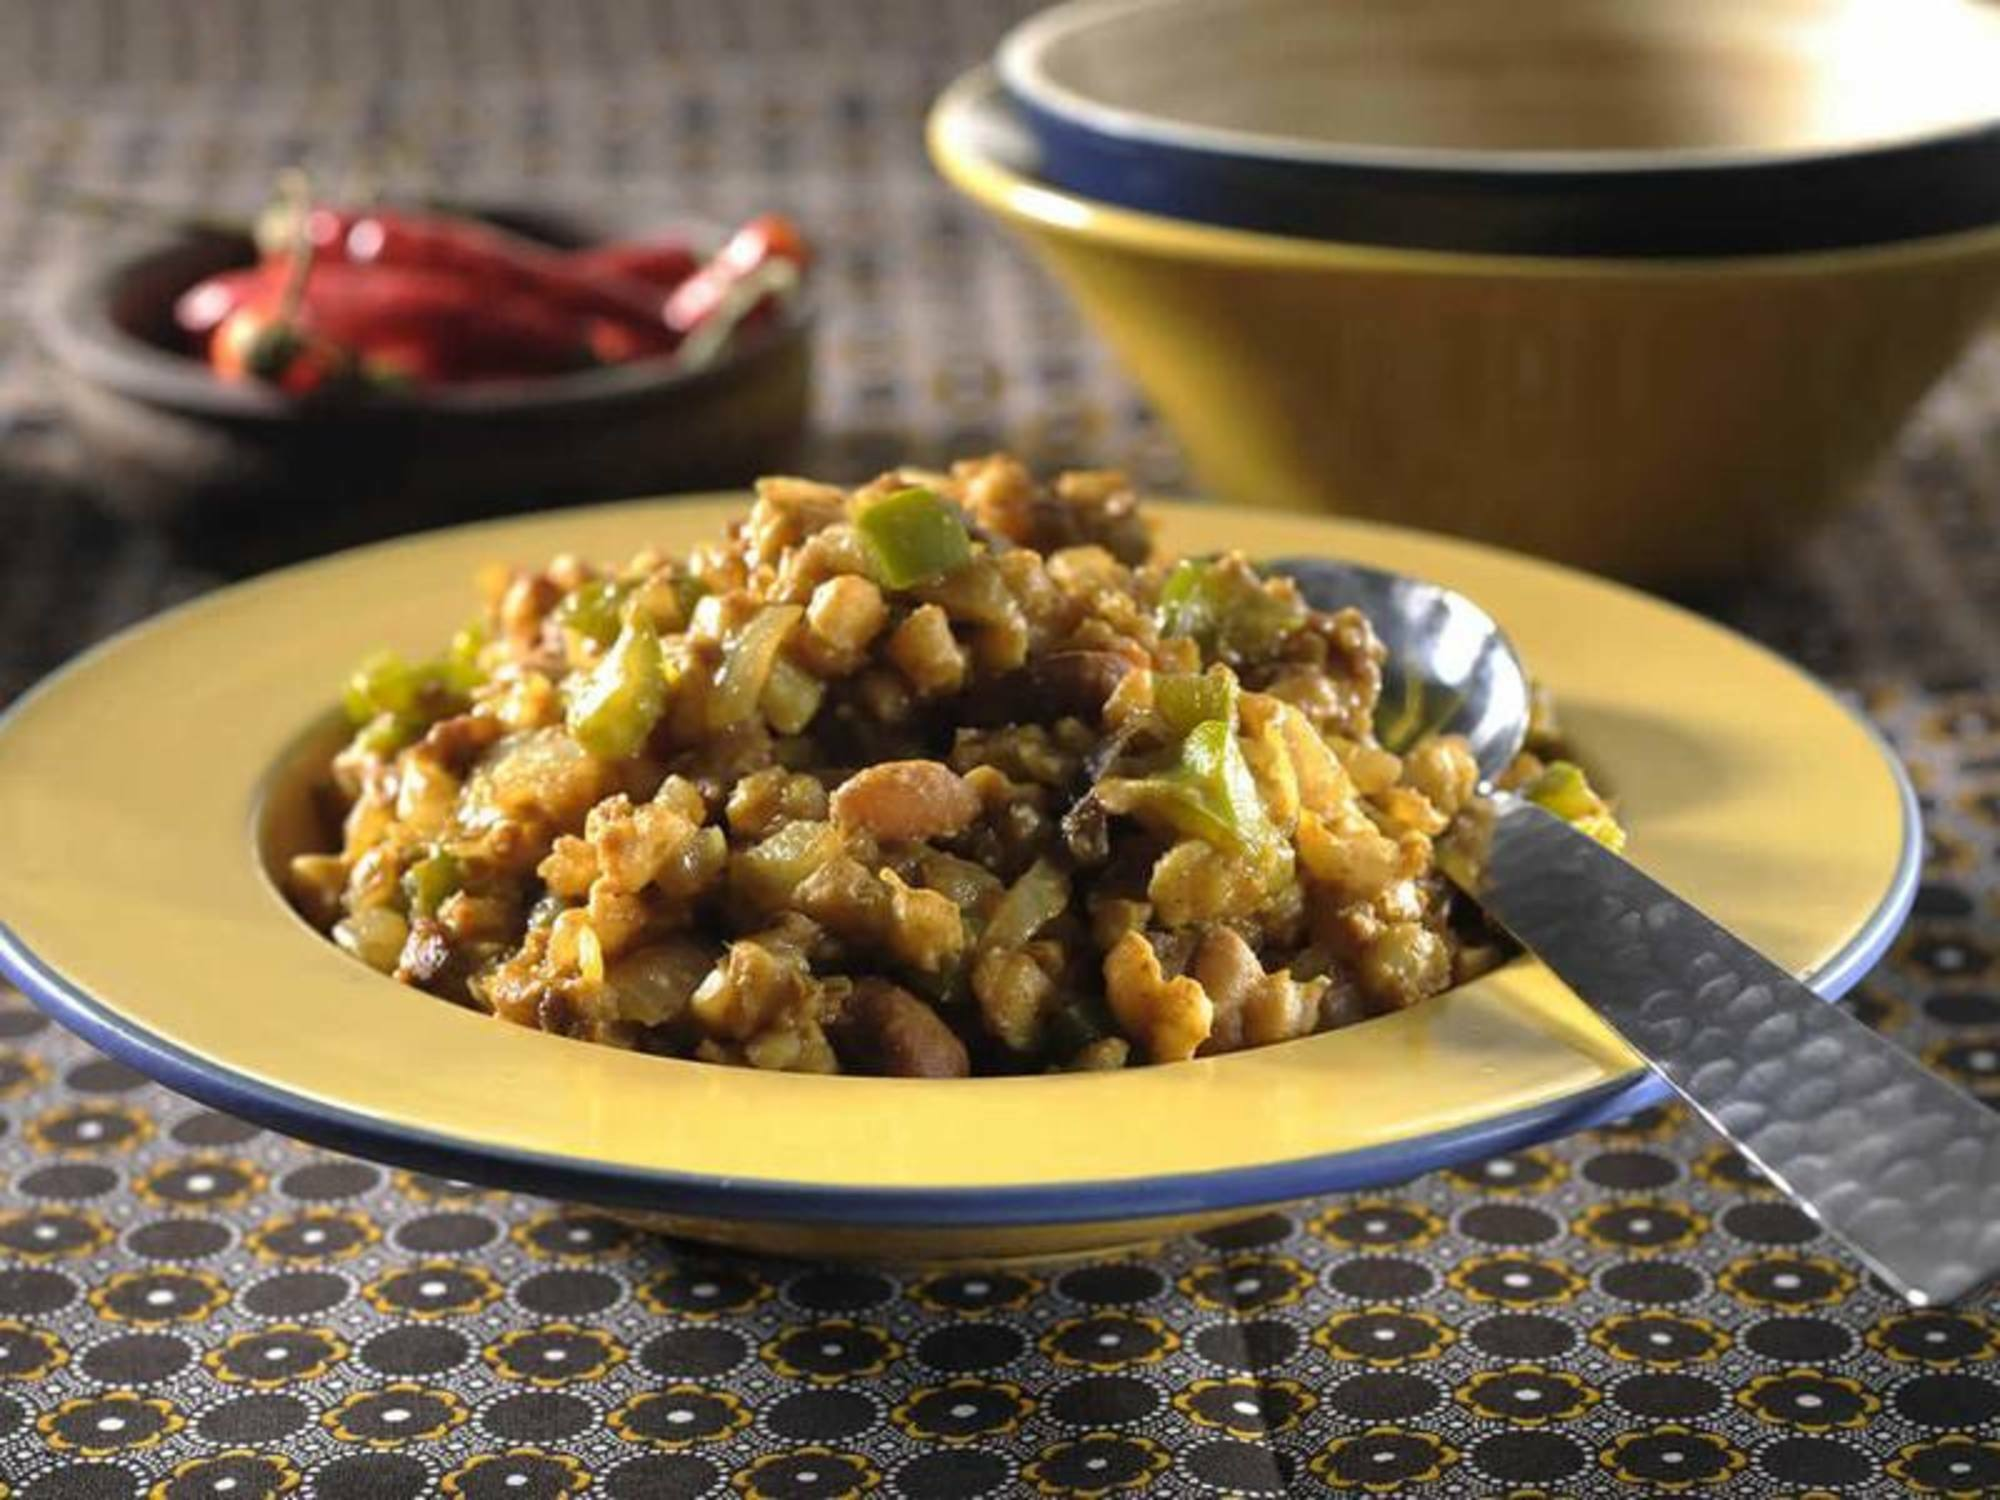 Spicy Soya Mince with Samp Beans